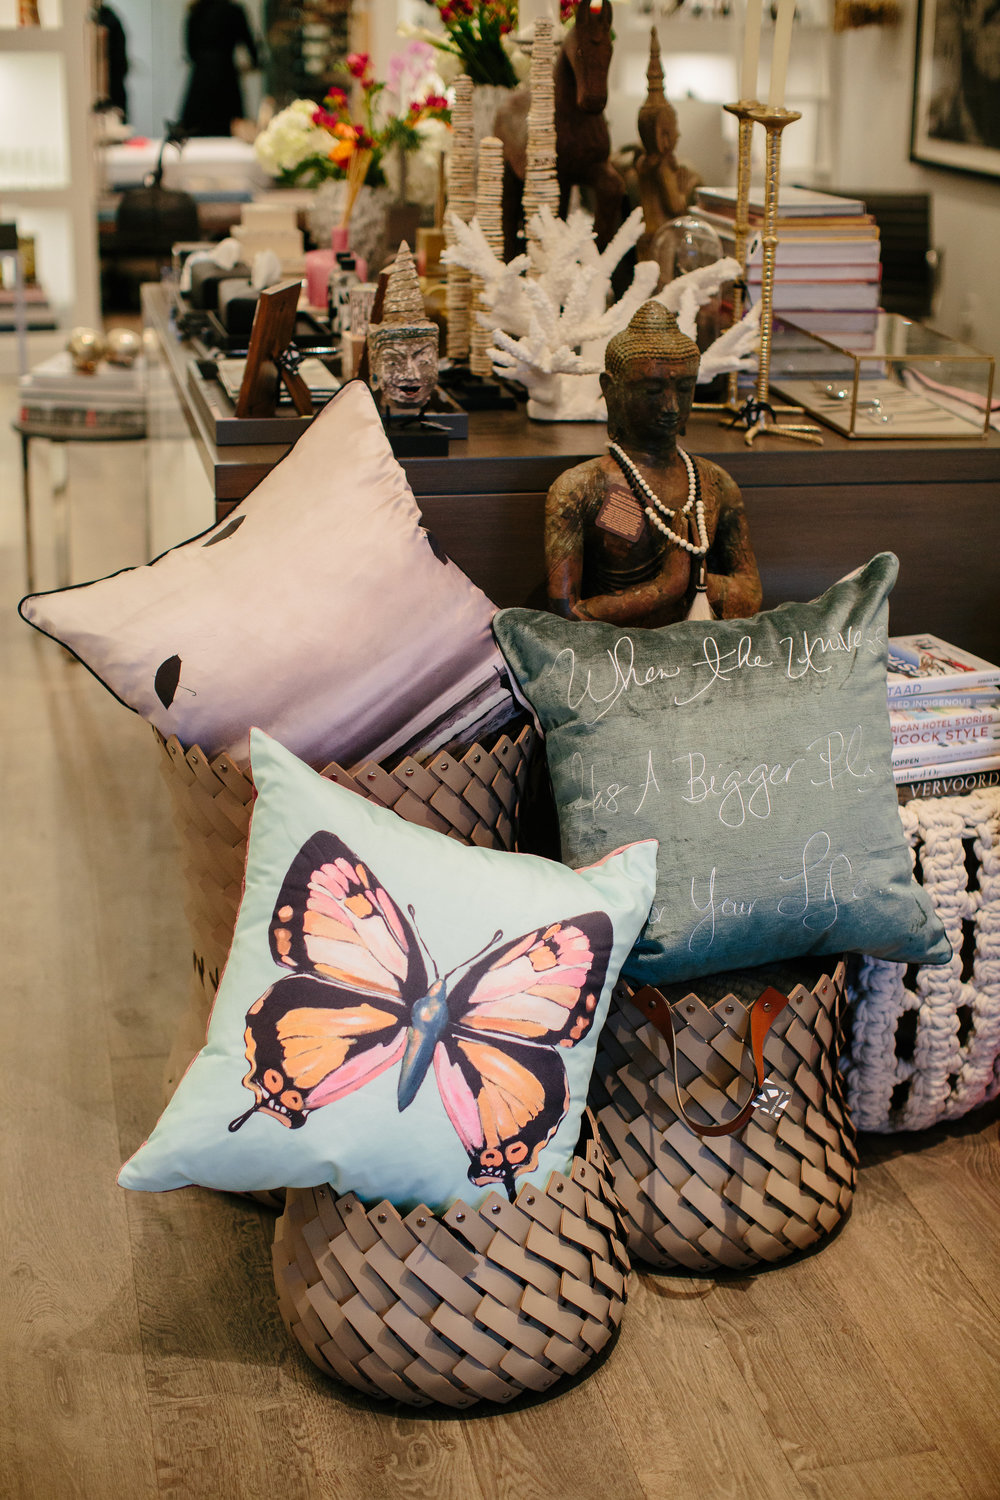 showroom pillows.JPG